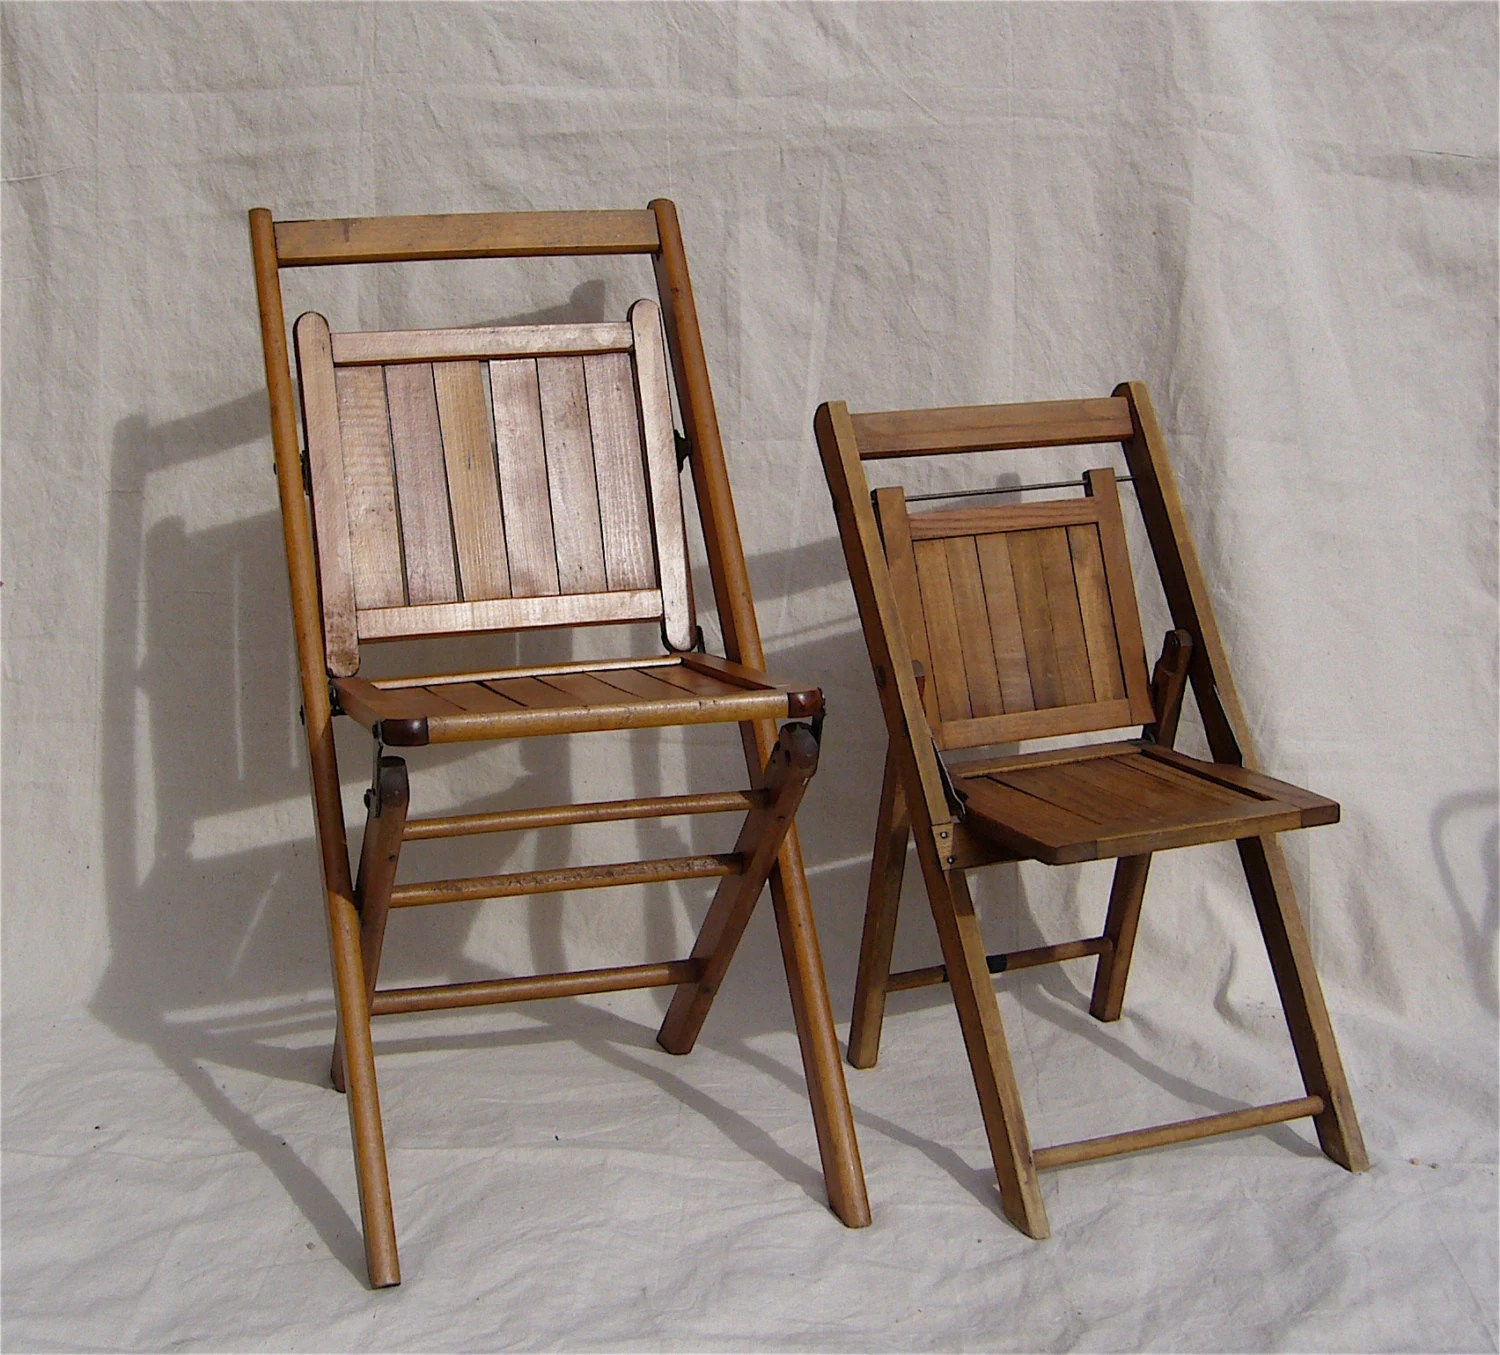 folding chair for child cool high chairs antique wood slat pair adult and sized c